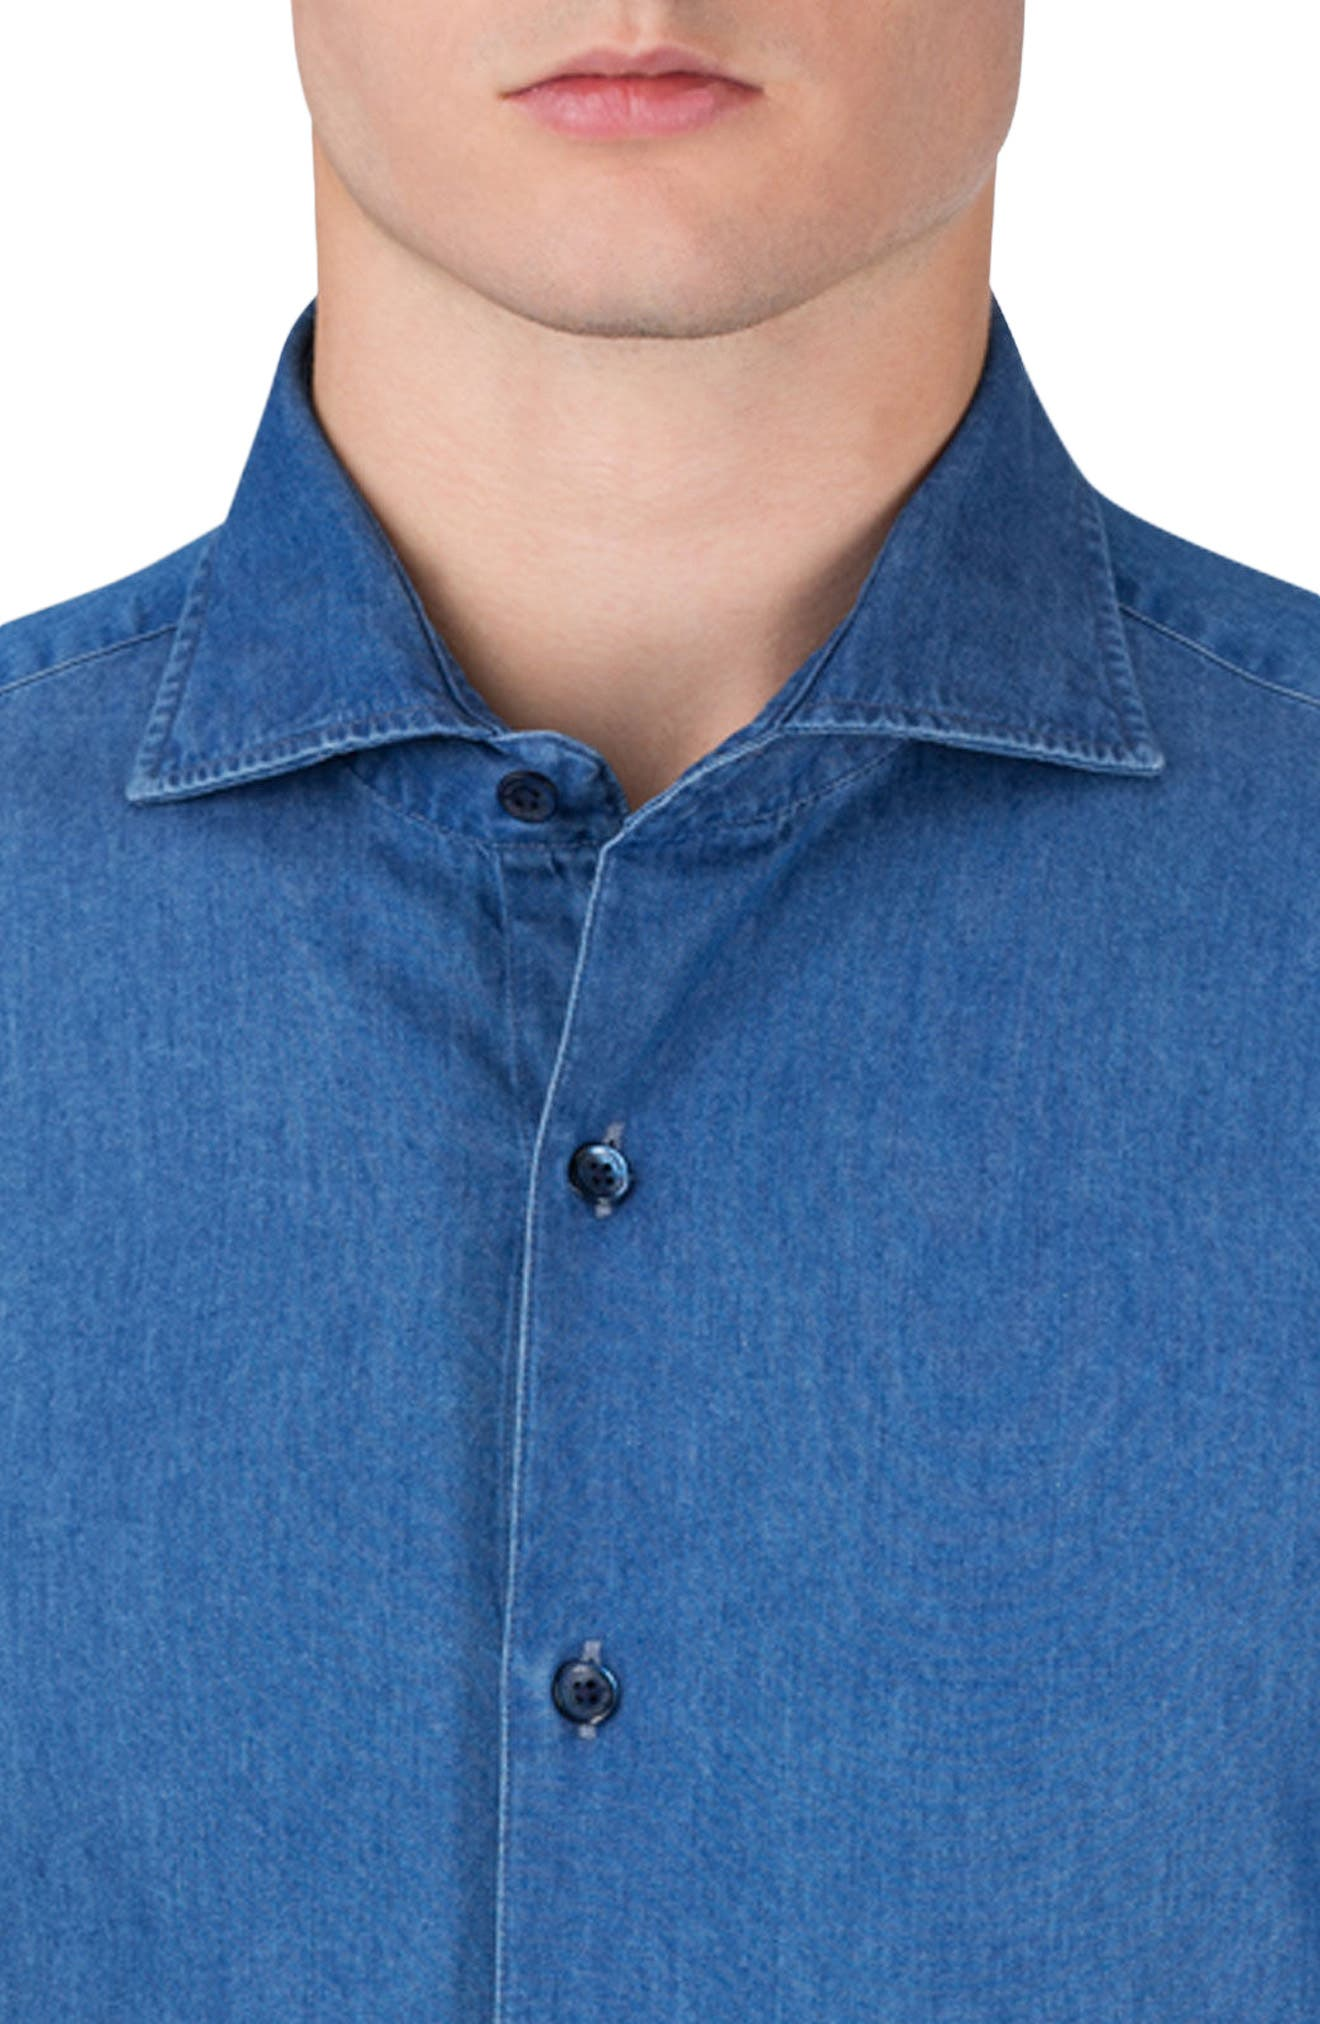 Classic Fit Chambray Sport Shirt,                             Alternate thumbnail 3, color,                             427